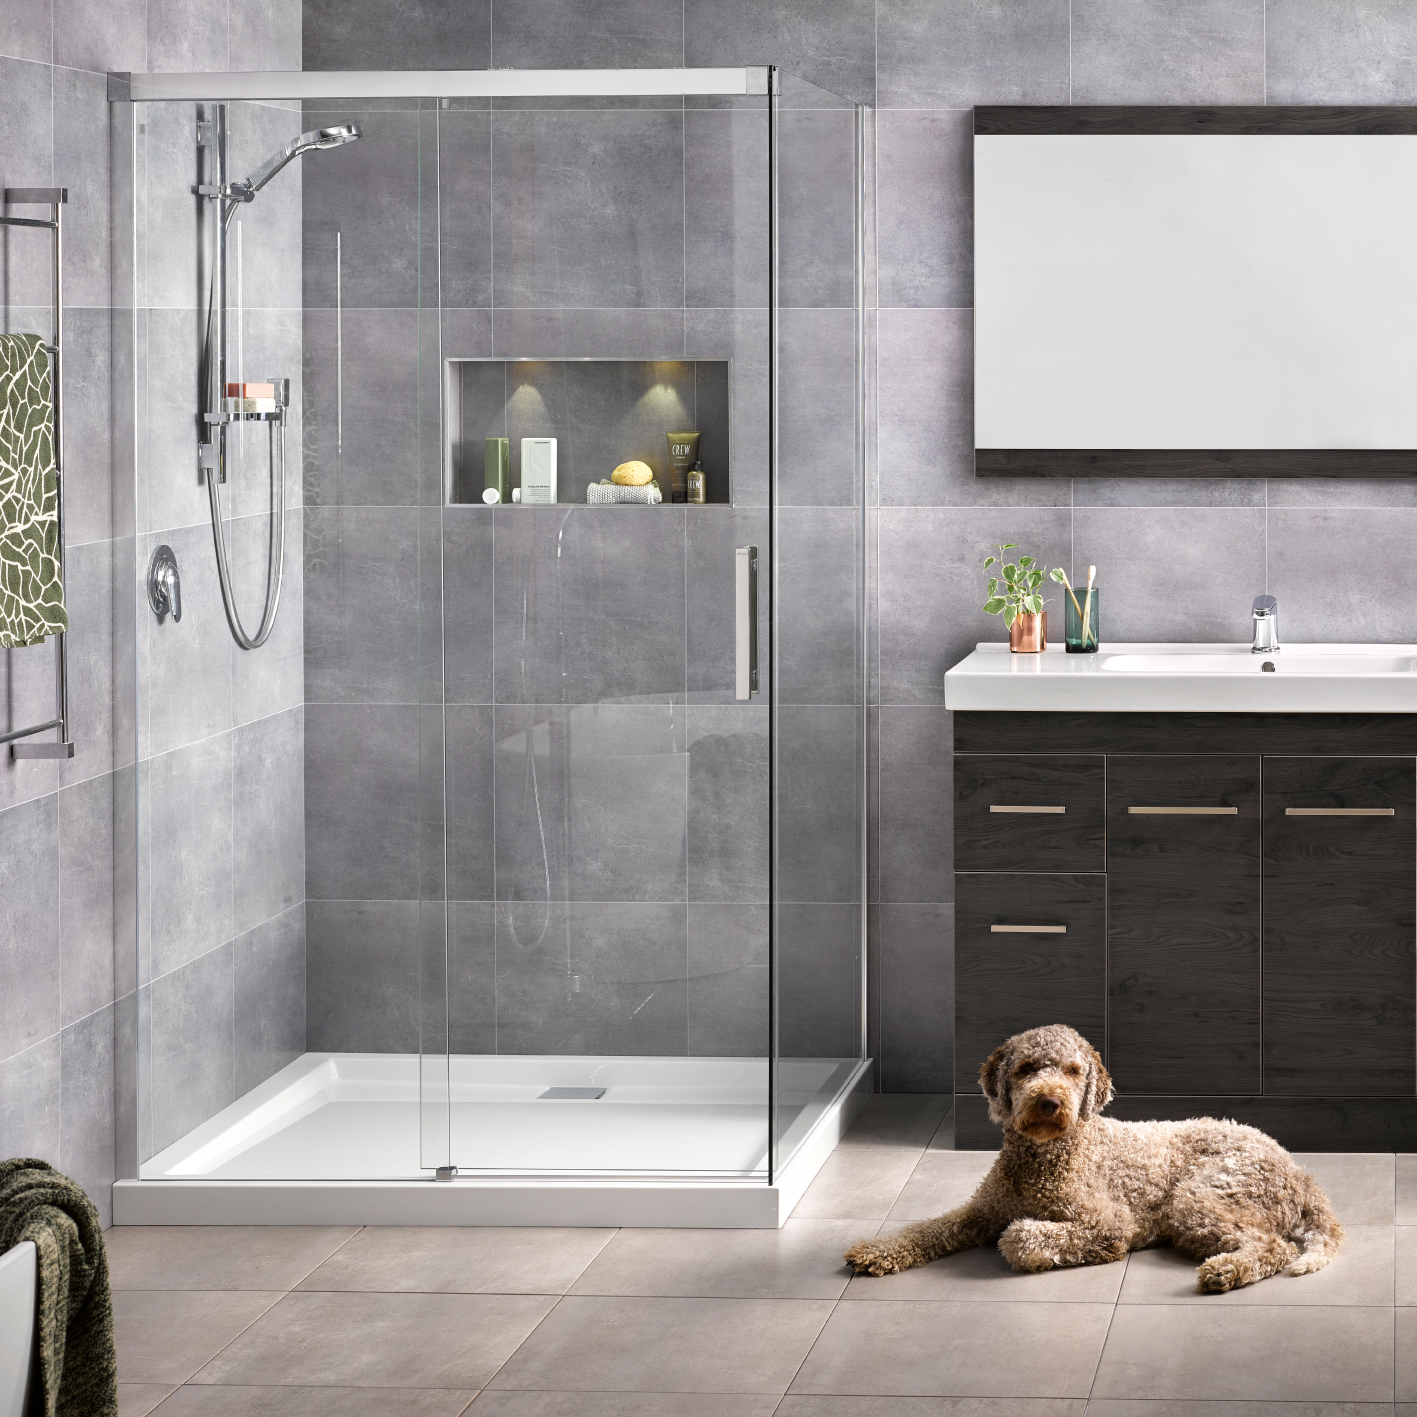 Motio 1200x1000 2 Sided Shower on Tiled Wall - RRP $2830